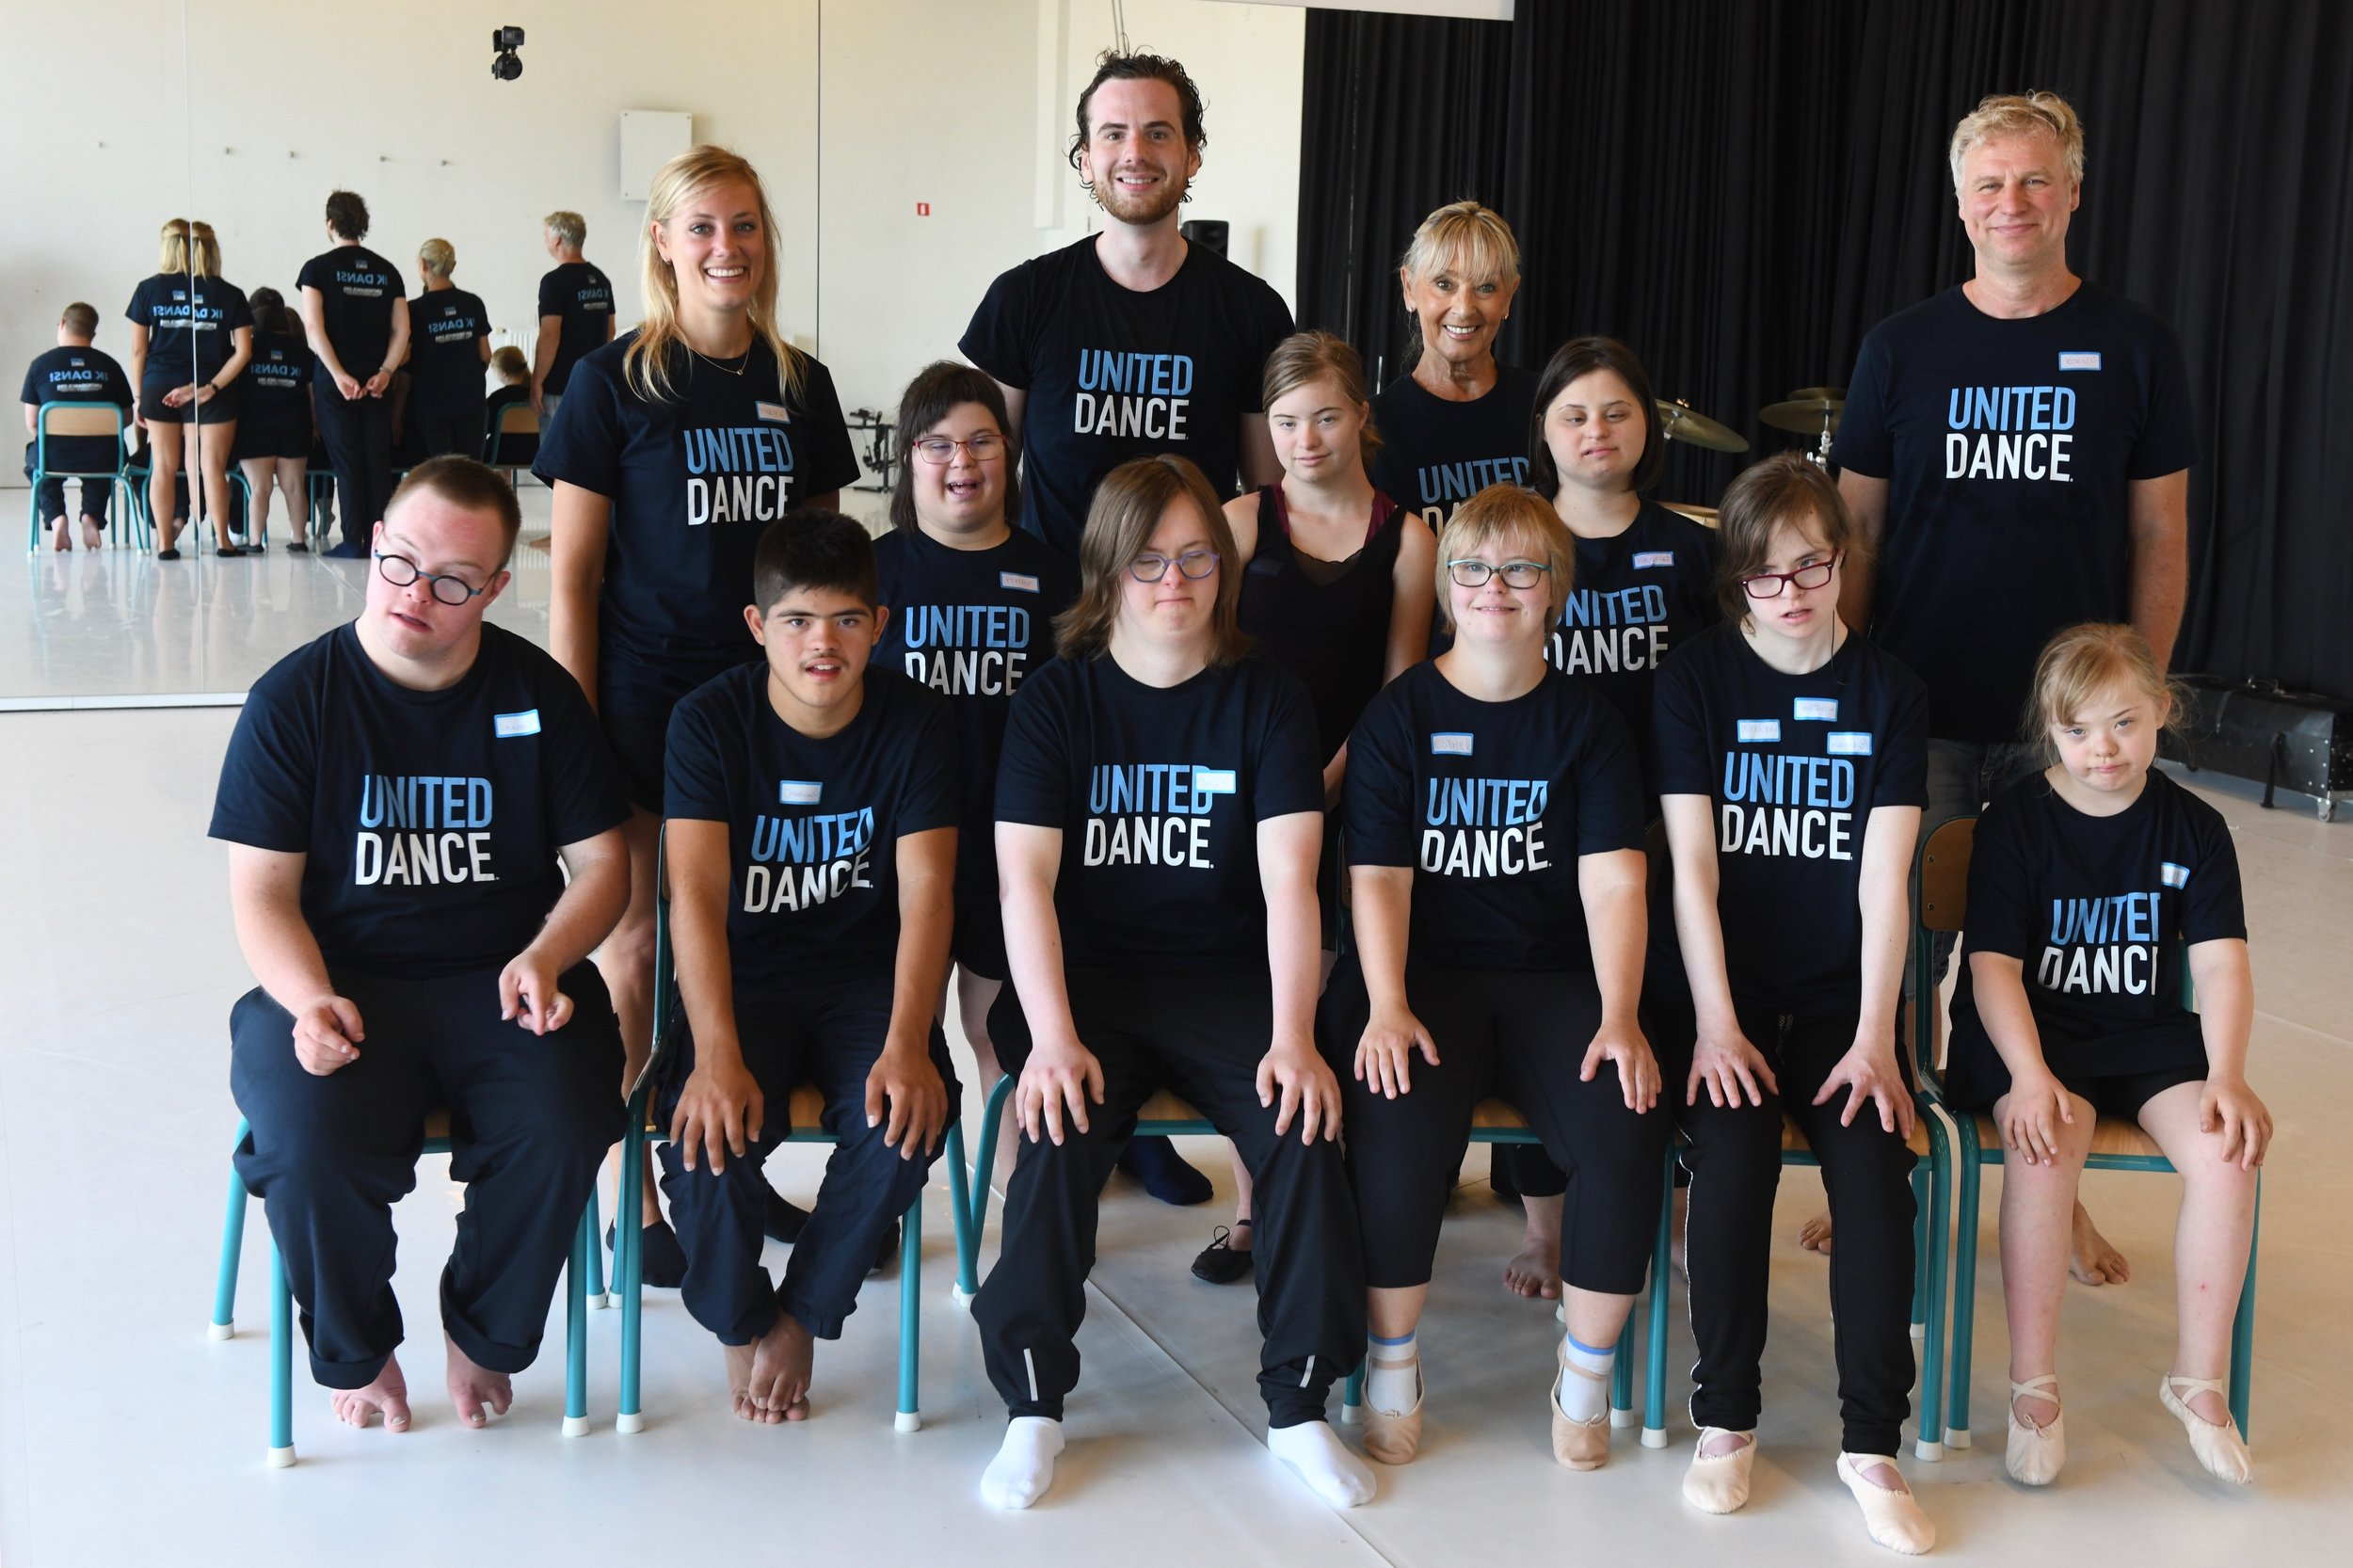 Participants and team, United Dance Summer course Antwerp 2018